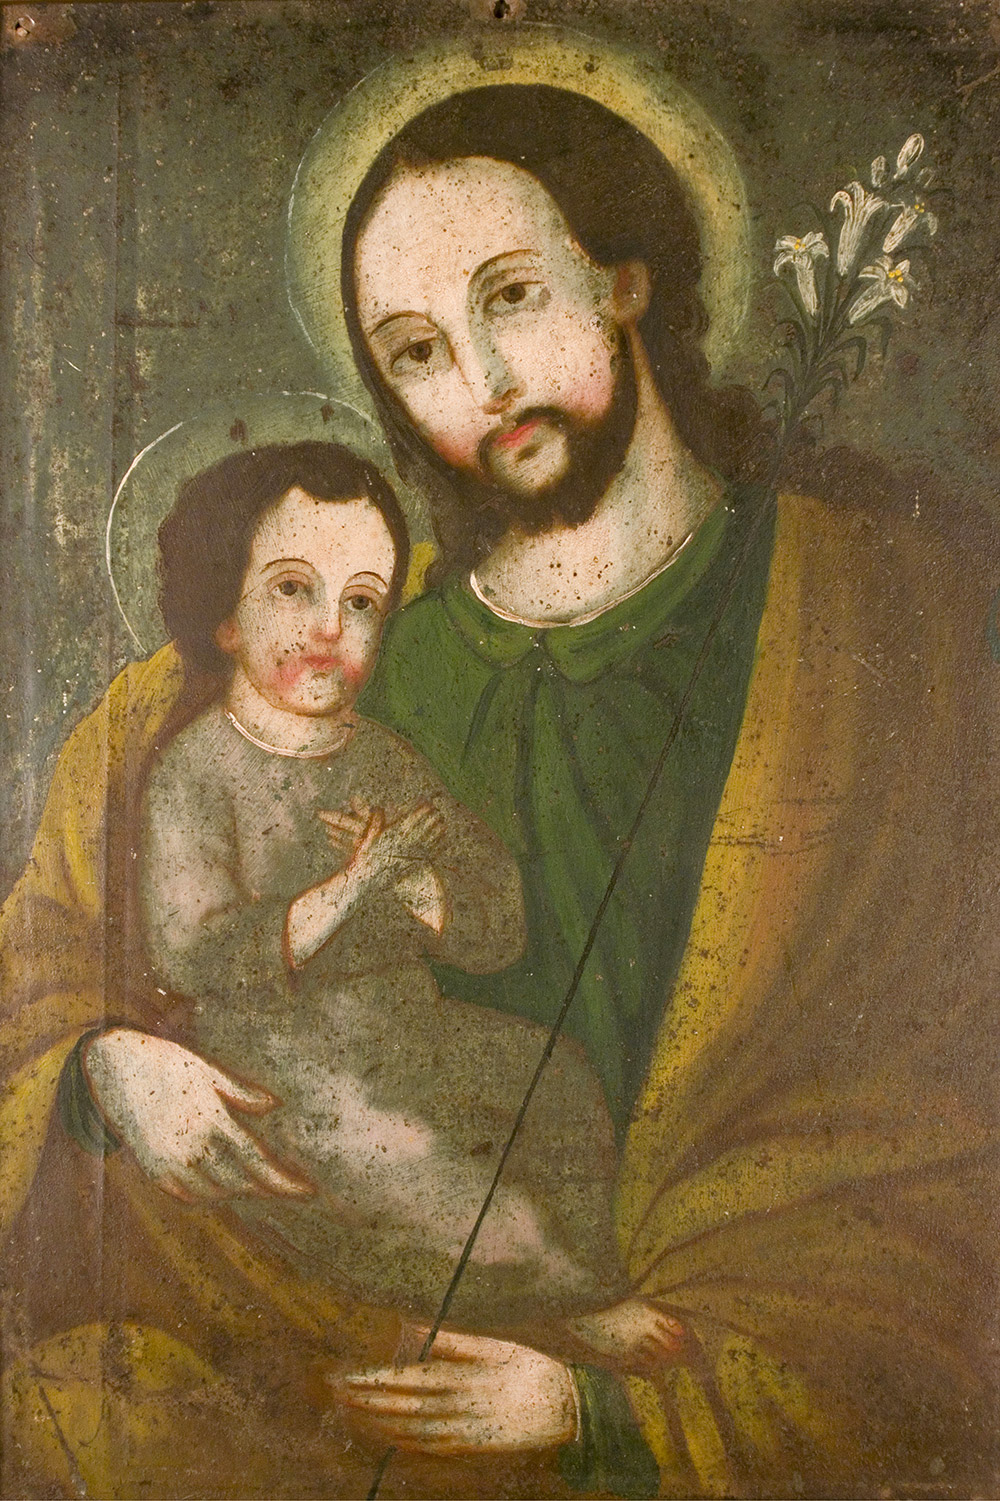 Joseph Und Joseph Saint Joseph And The Christ Child Museum Of The Big Bend